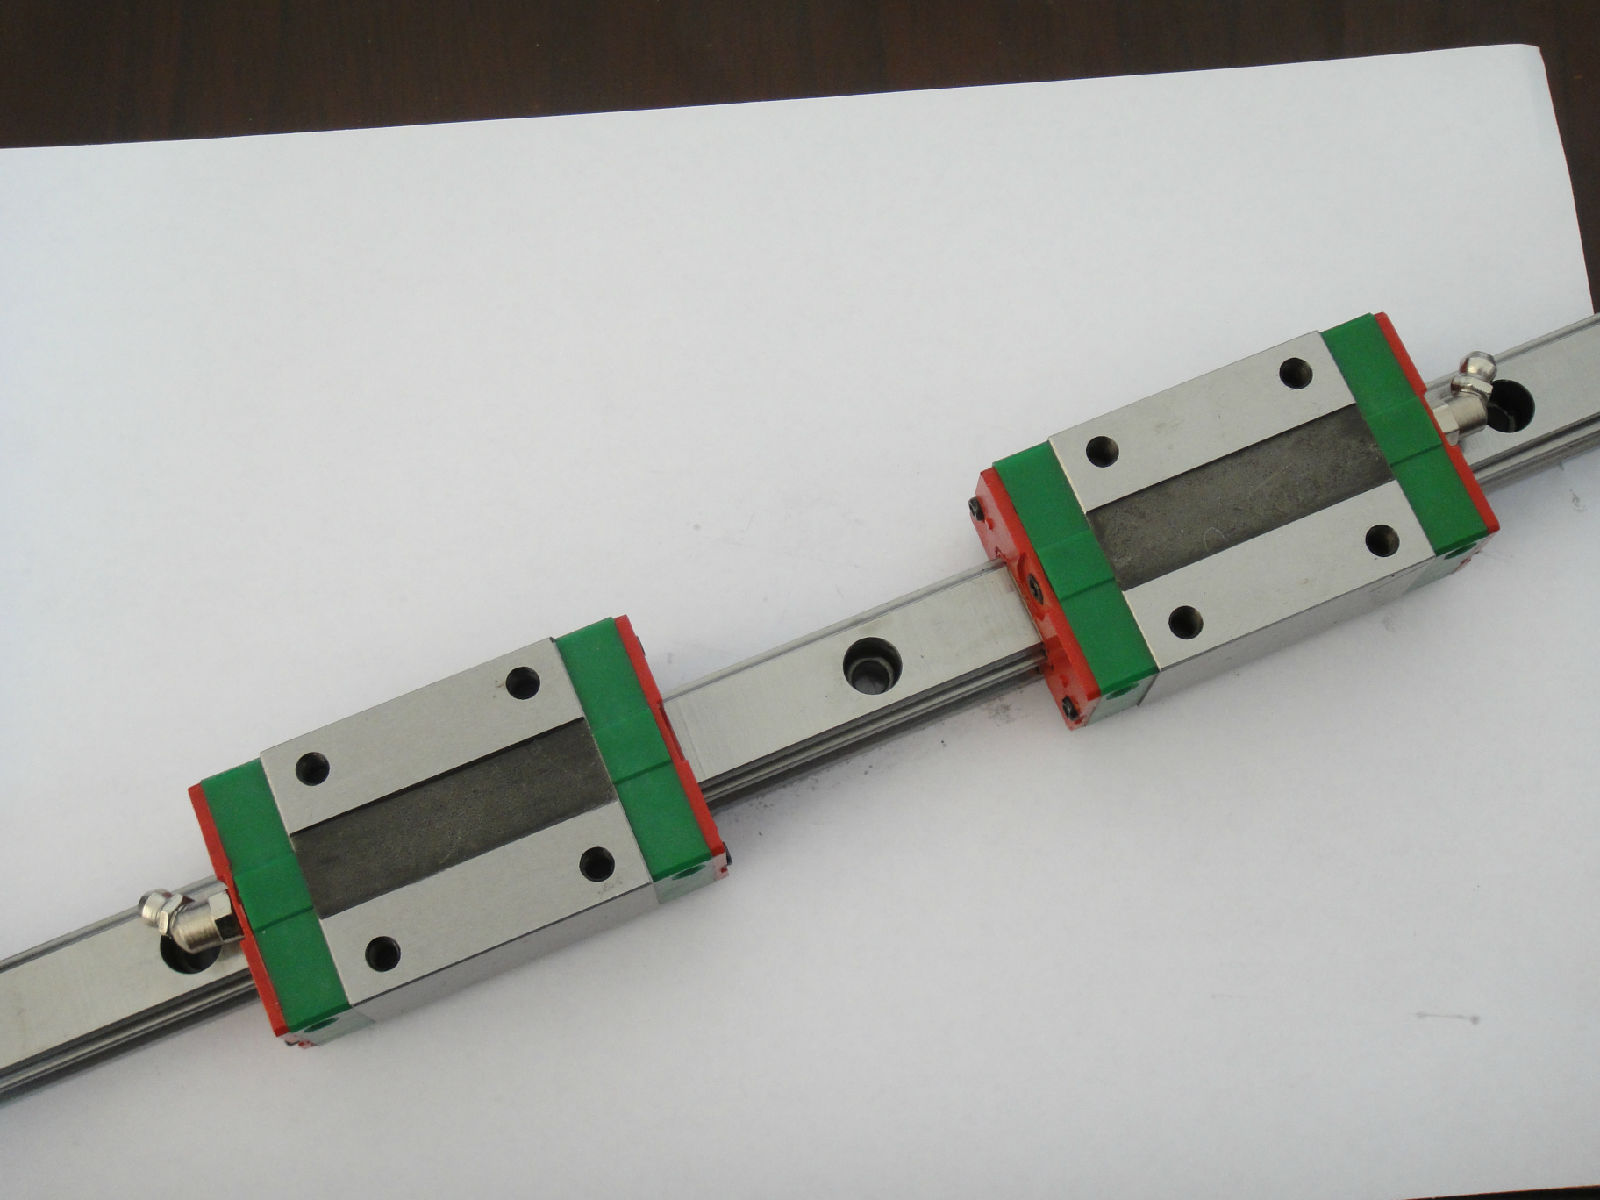 100% genuine HIWIN linear guide HGR20-1700MM block for Taiwan 100% genuine hiwin linear guide hgr30 1700mm block for taiwan